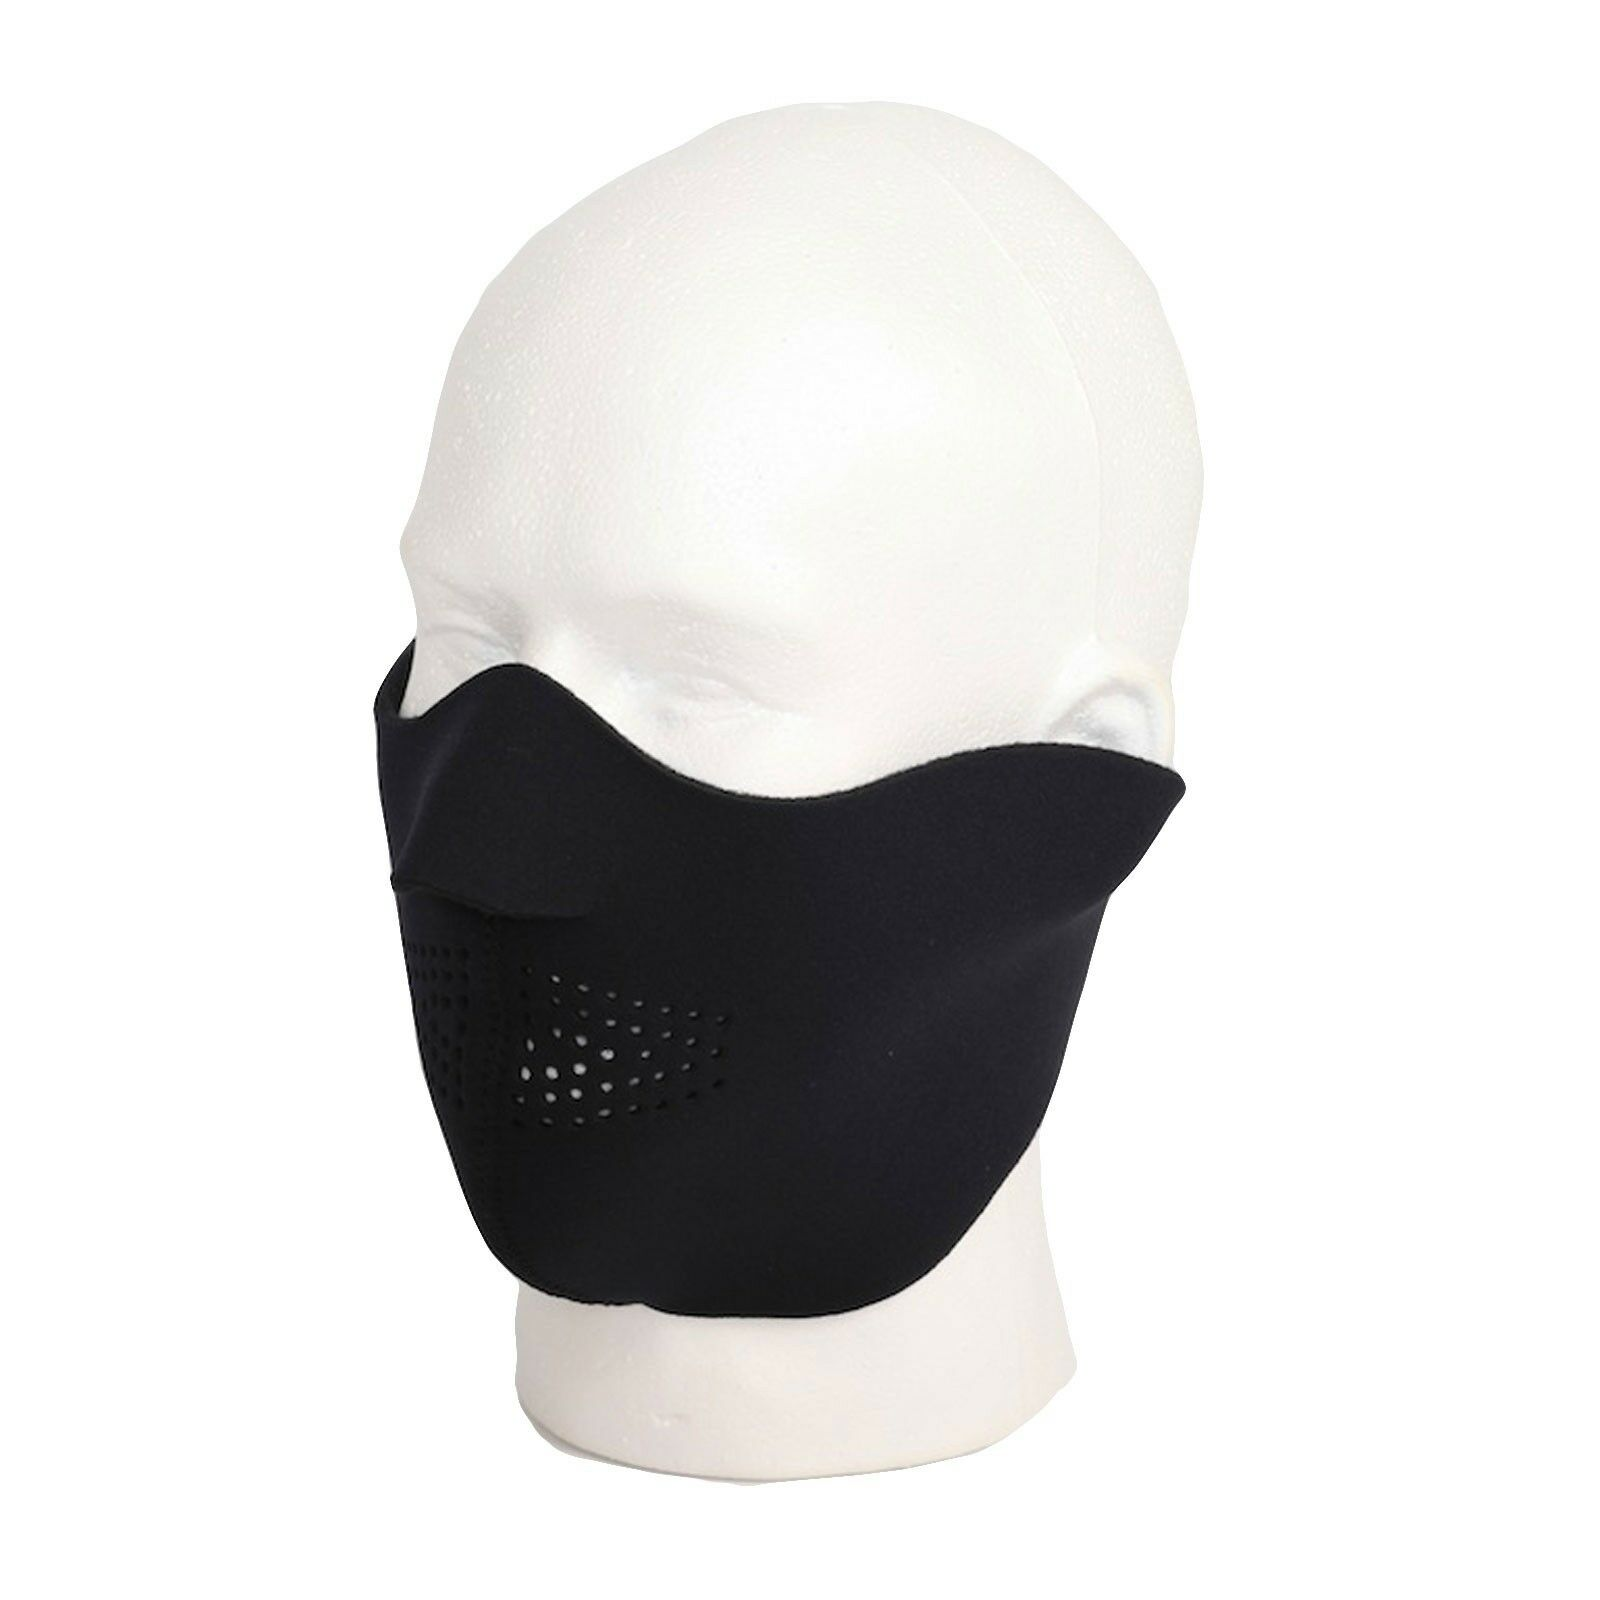 Protect Your Immune System from Silver Breathe Healthy Honeycomb Face Mask